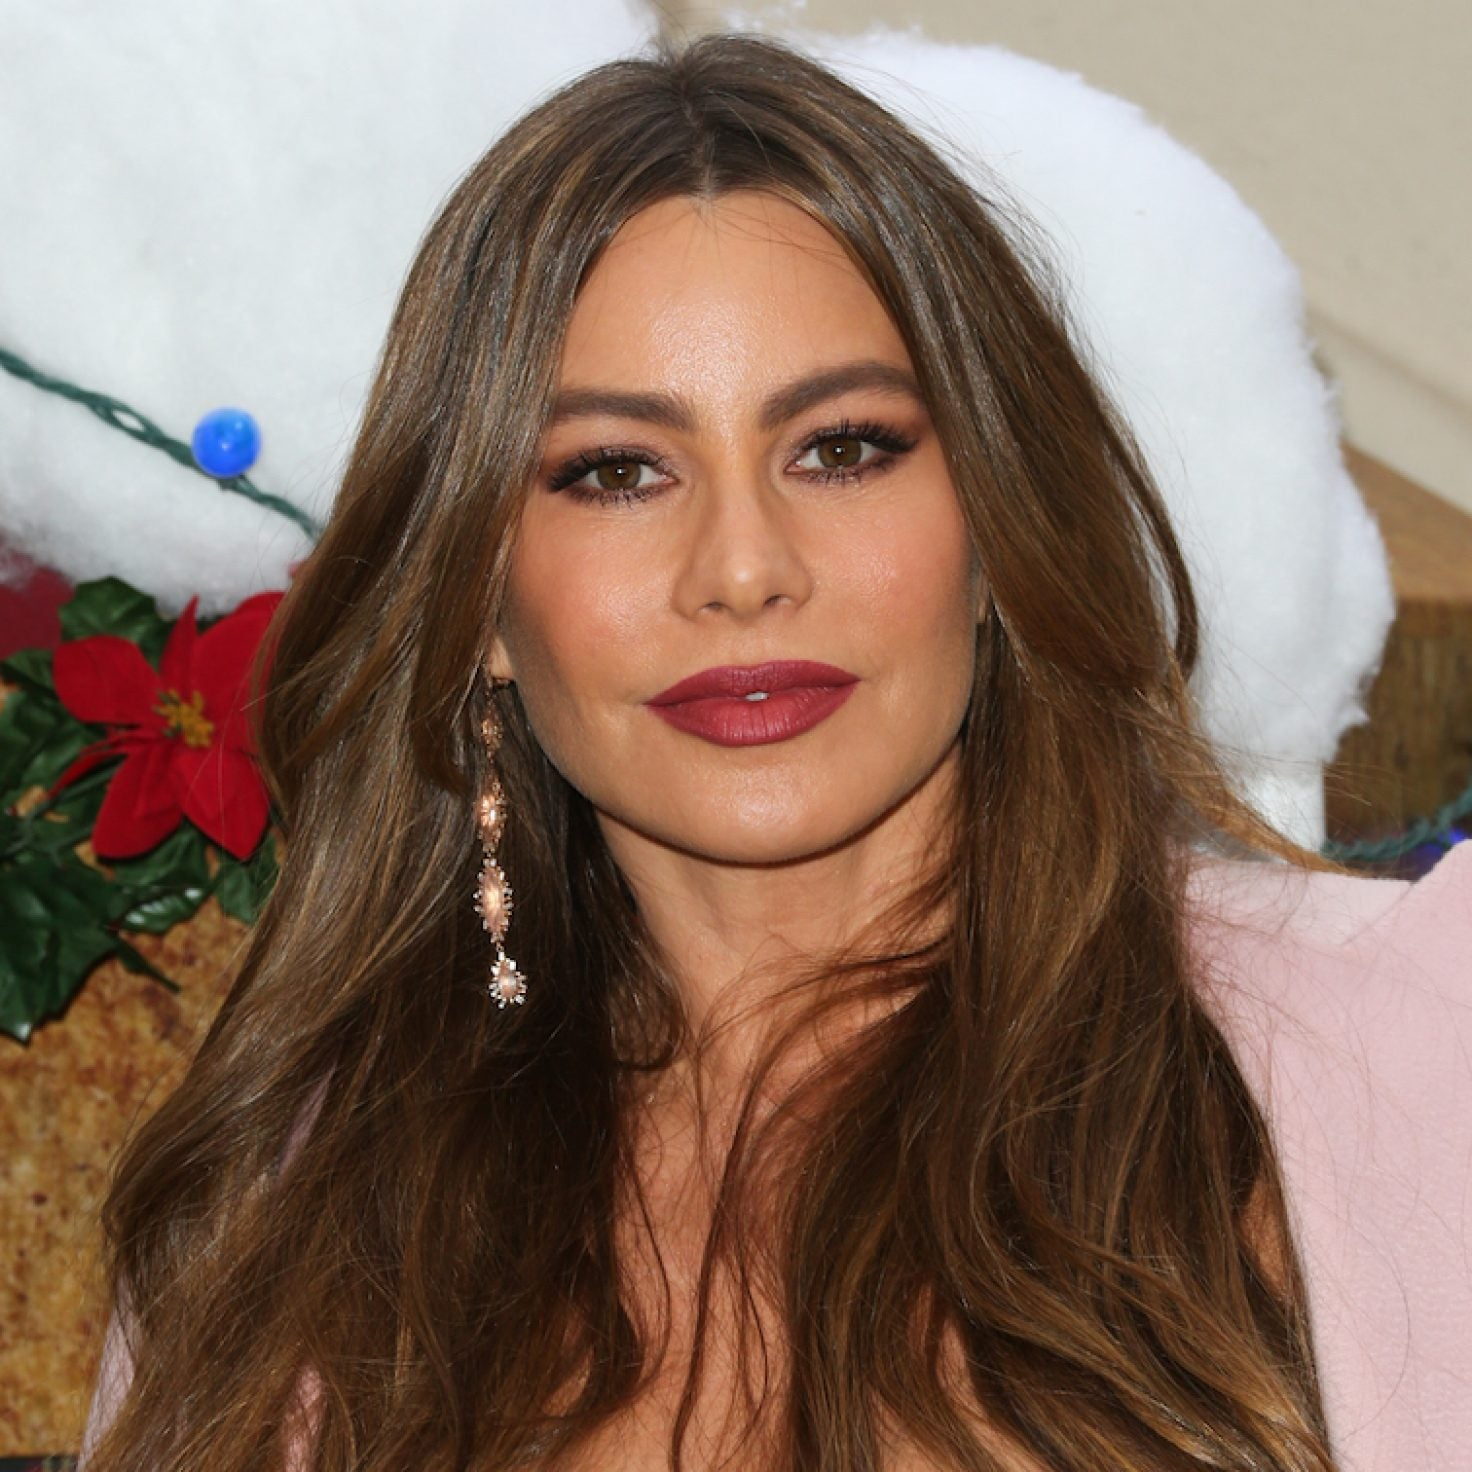 Sofia Vergara Eyed For 'America's Got Talent' Judge After Gabrielle Union's Controversial Firing